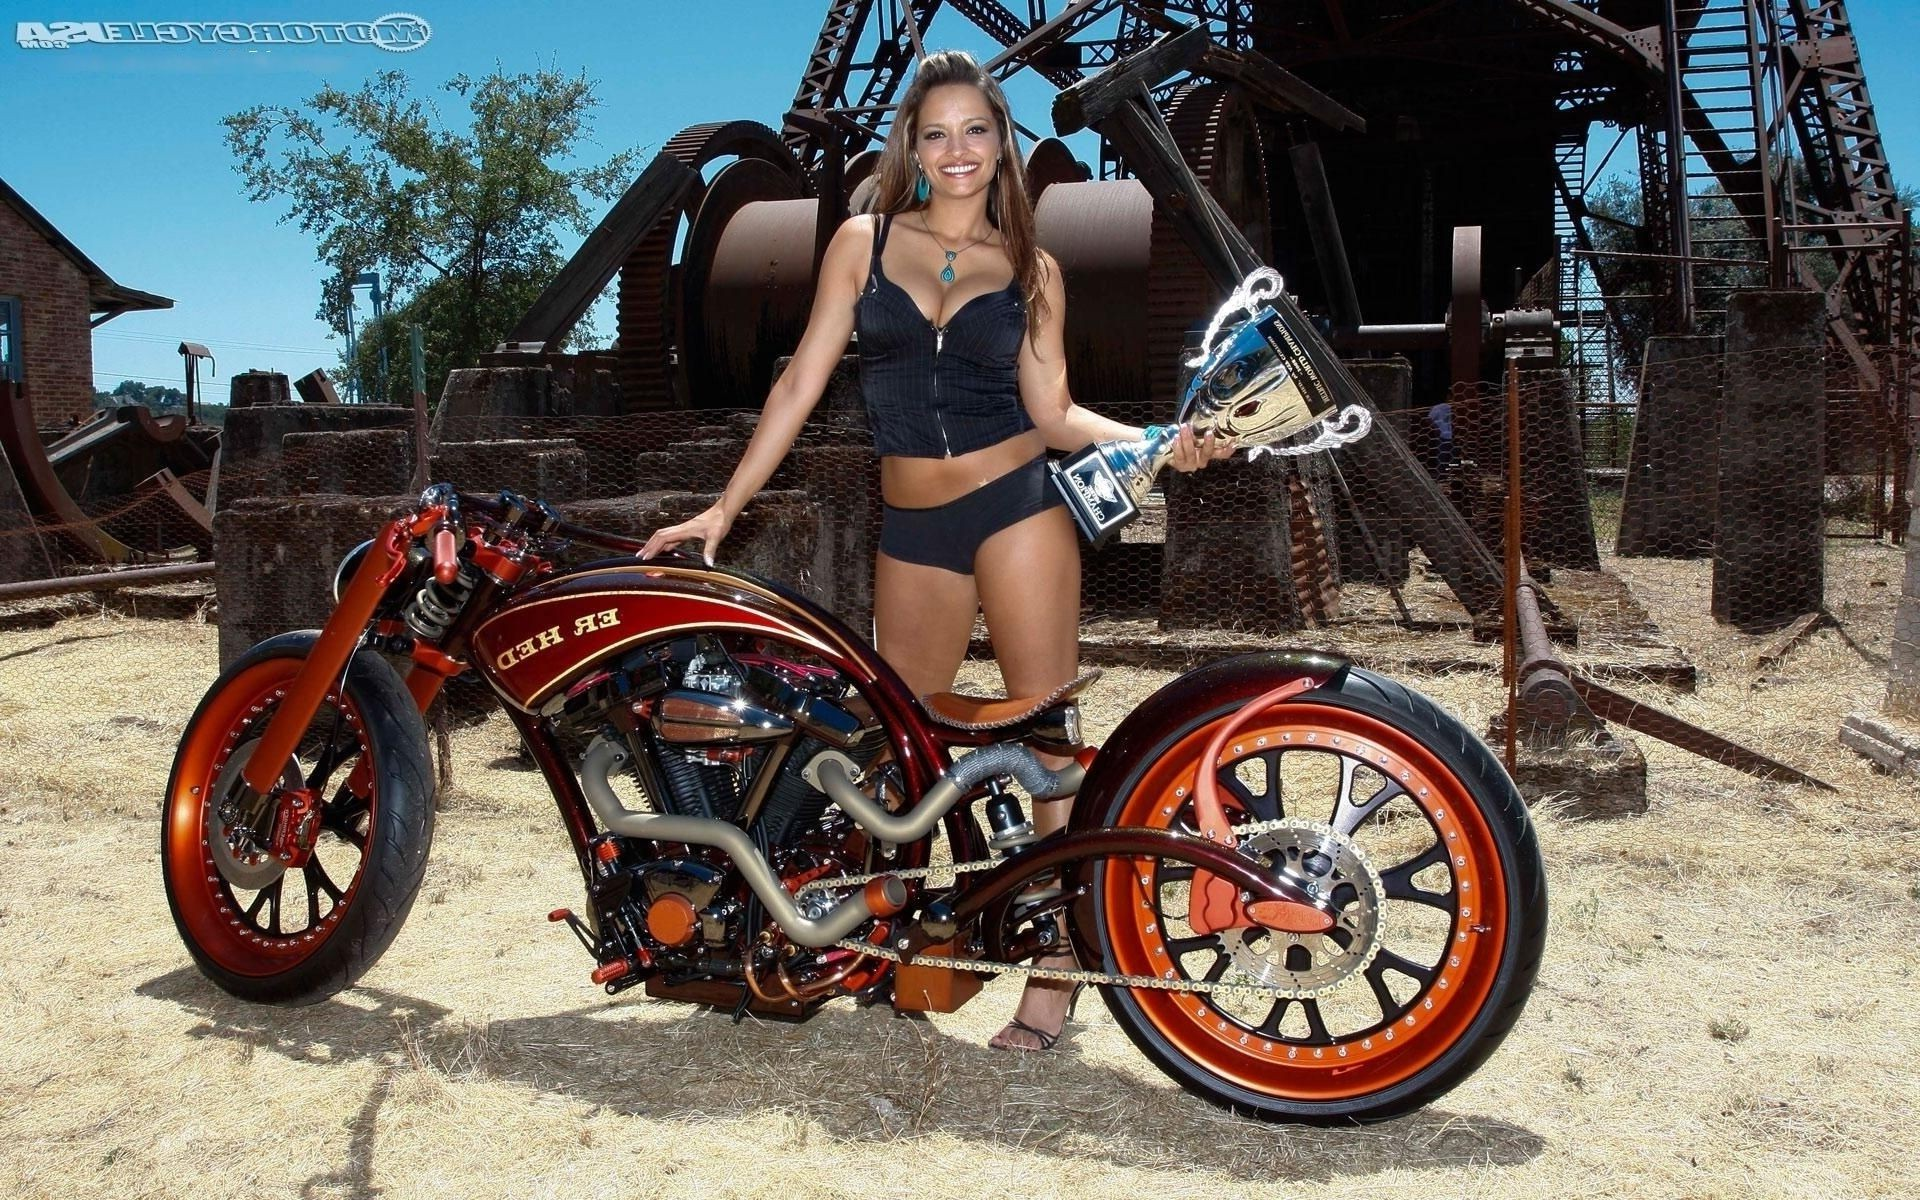 girls and motorcycles wheel vehicle transportation system bike